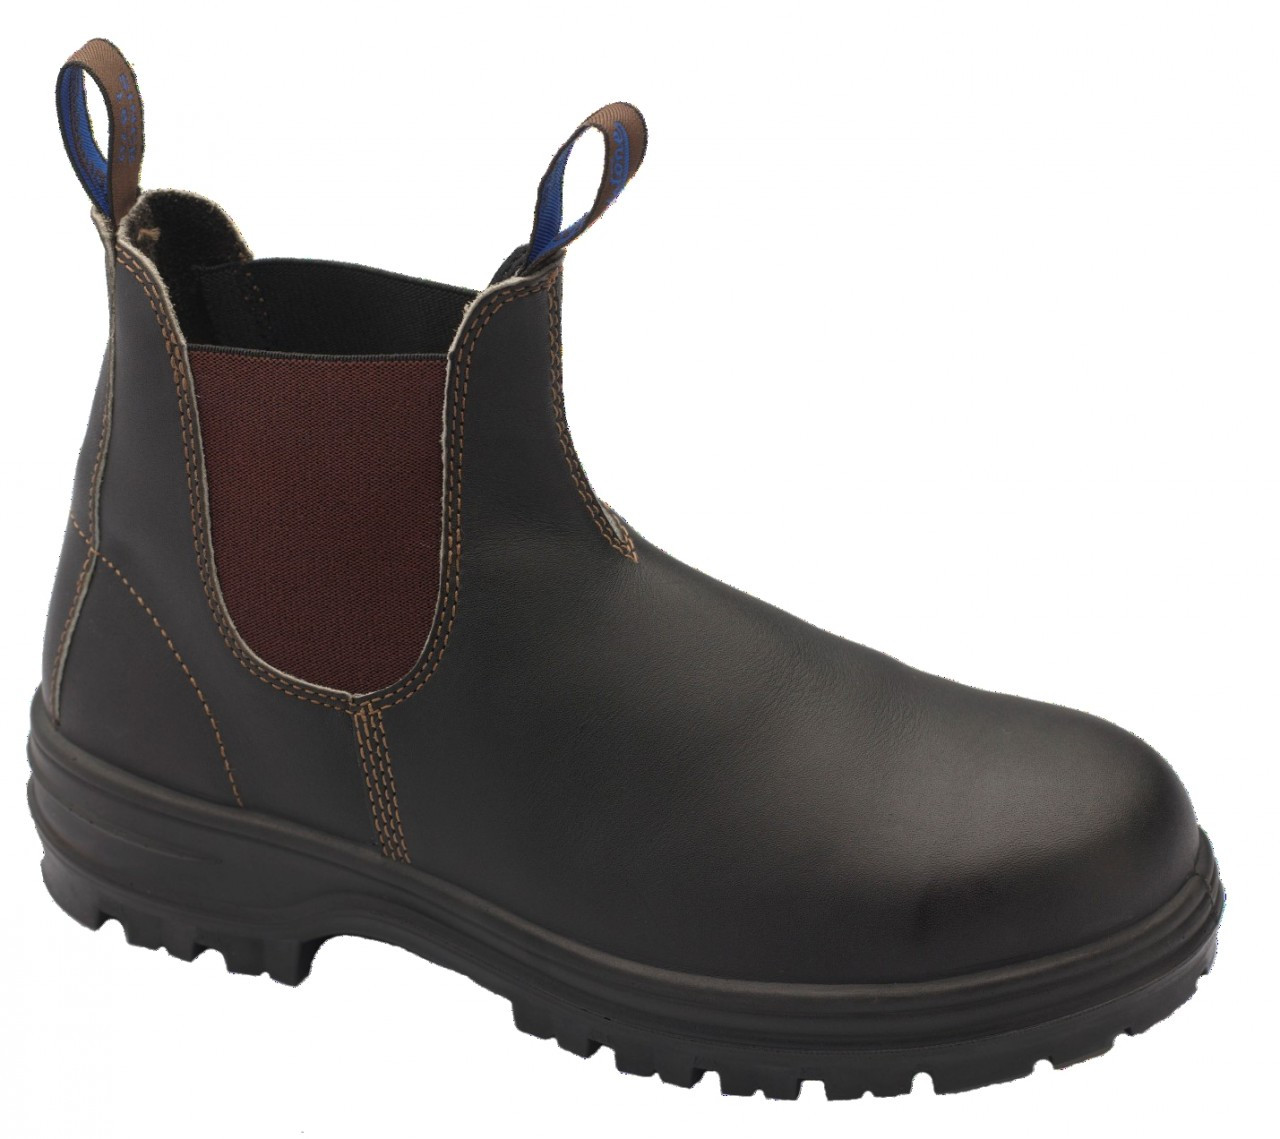 5f80f2f43a Blundstone 140 Steel Cap Safety Work Boots